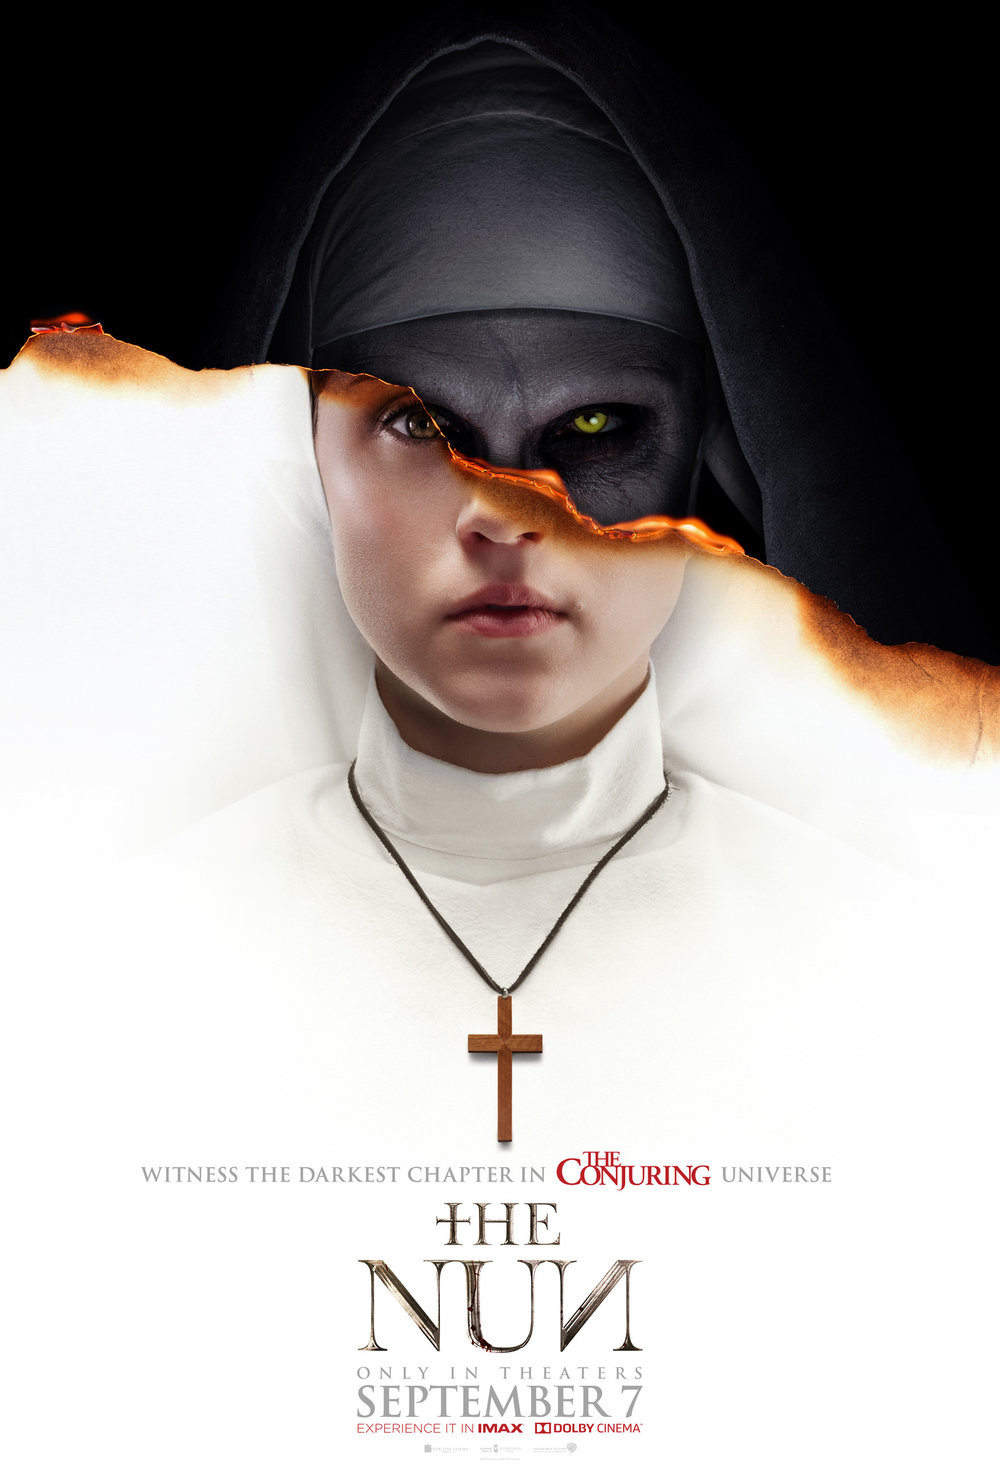 A real hot mess of a movie. I mean, I enjoyed parts of it, but an unfocused and lackadaisical script that insists on focusing on the wrong characters means that The Nun was just mediocre all around. -